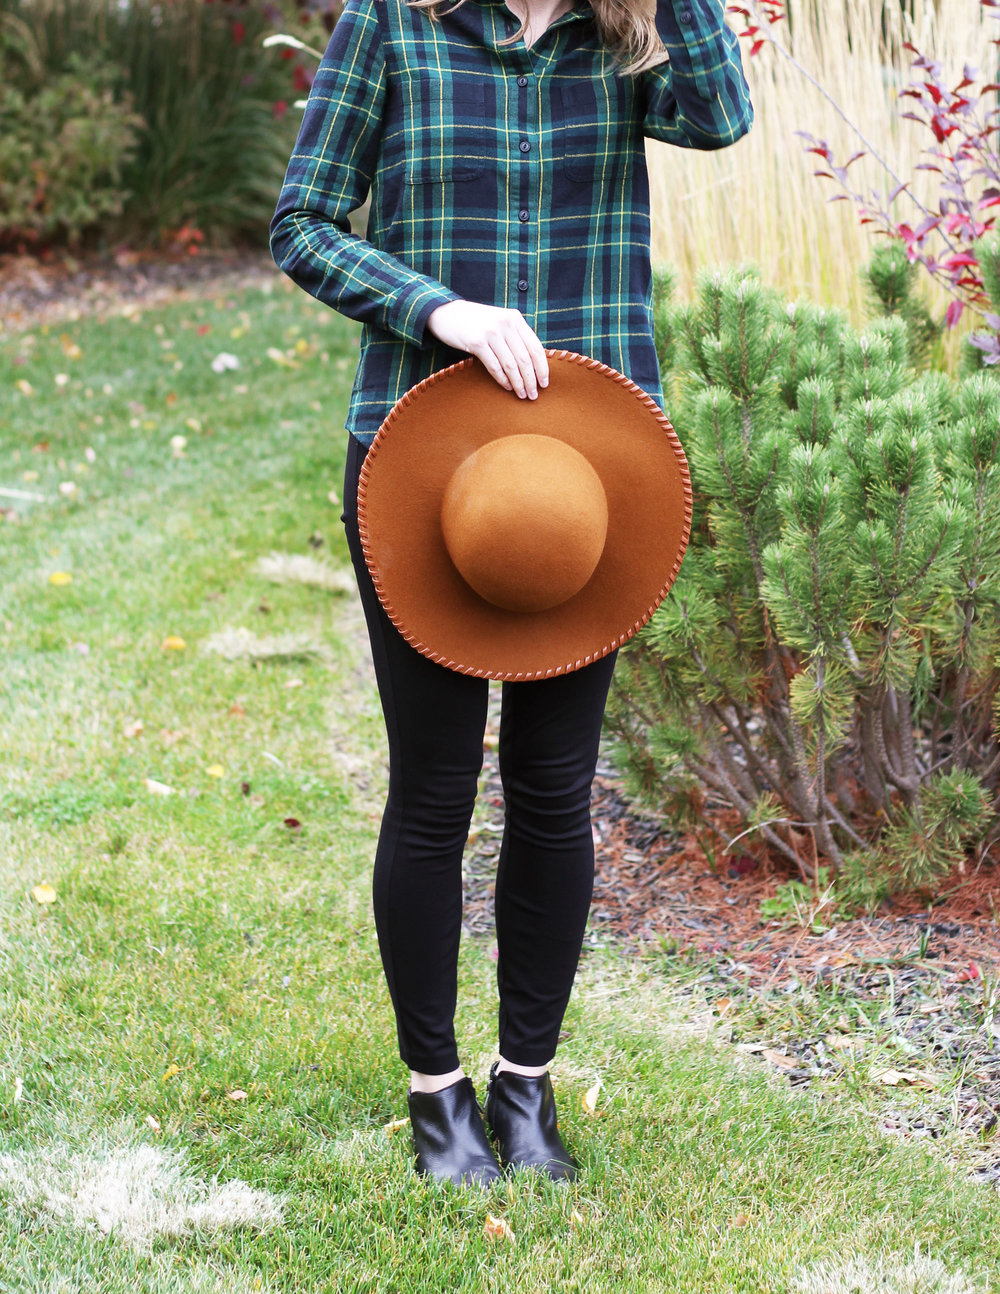 Shades of autumn: rust brown floppy hat + green flannel shirt + black pants + black ankle boots — Cotton Cashmere Cat Hair